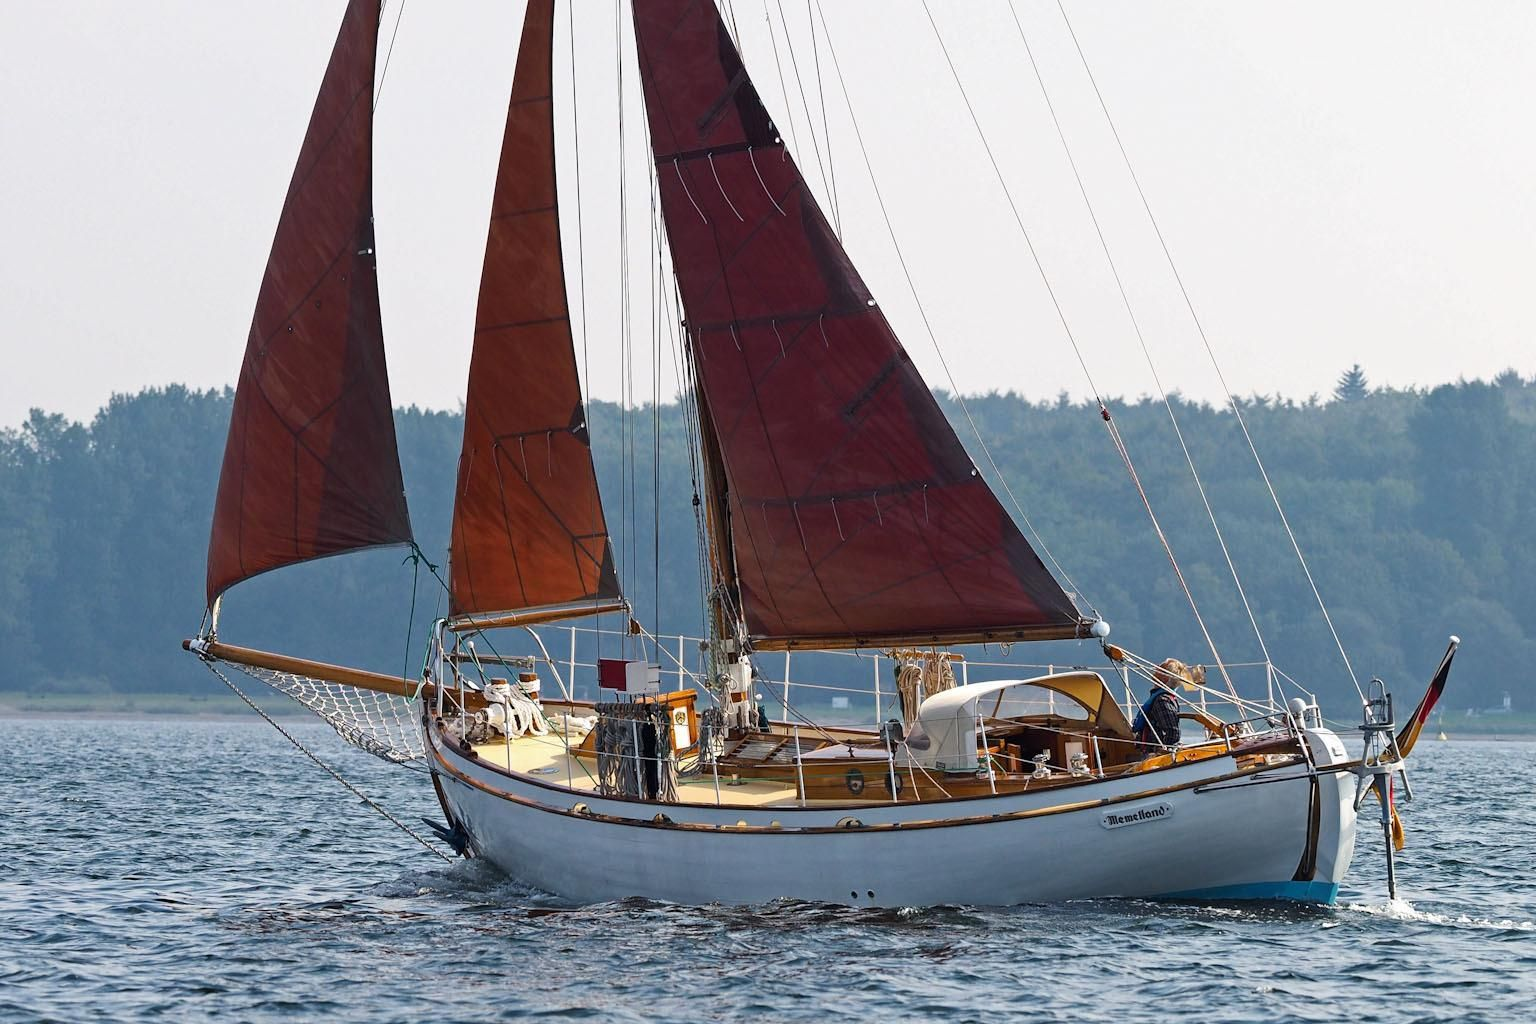 1935 Danish Classic Wooden Double Ender Sail Boat For Sale - www.yachtworld.com